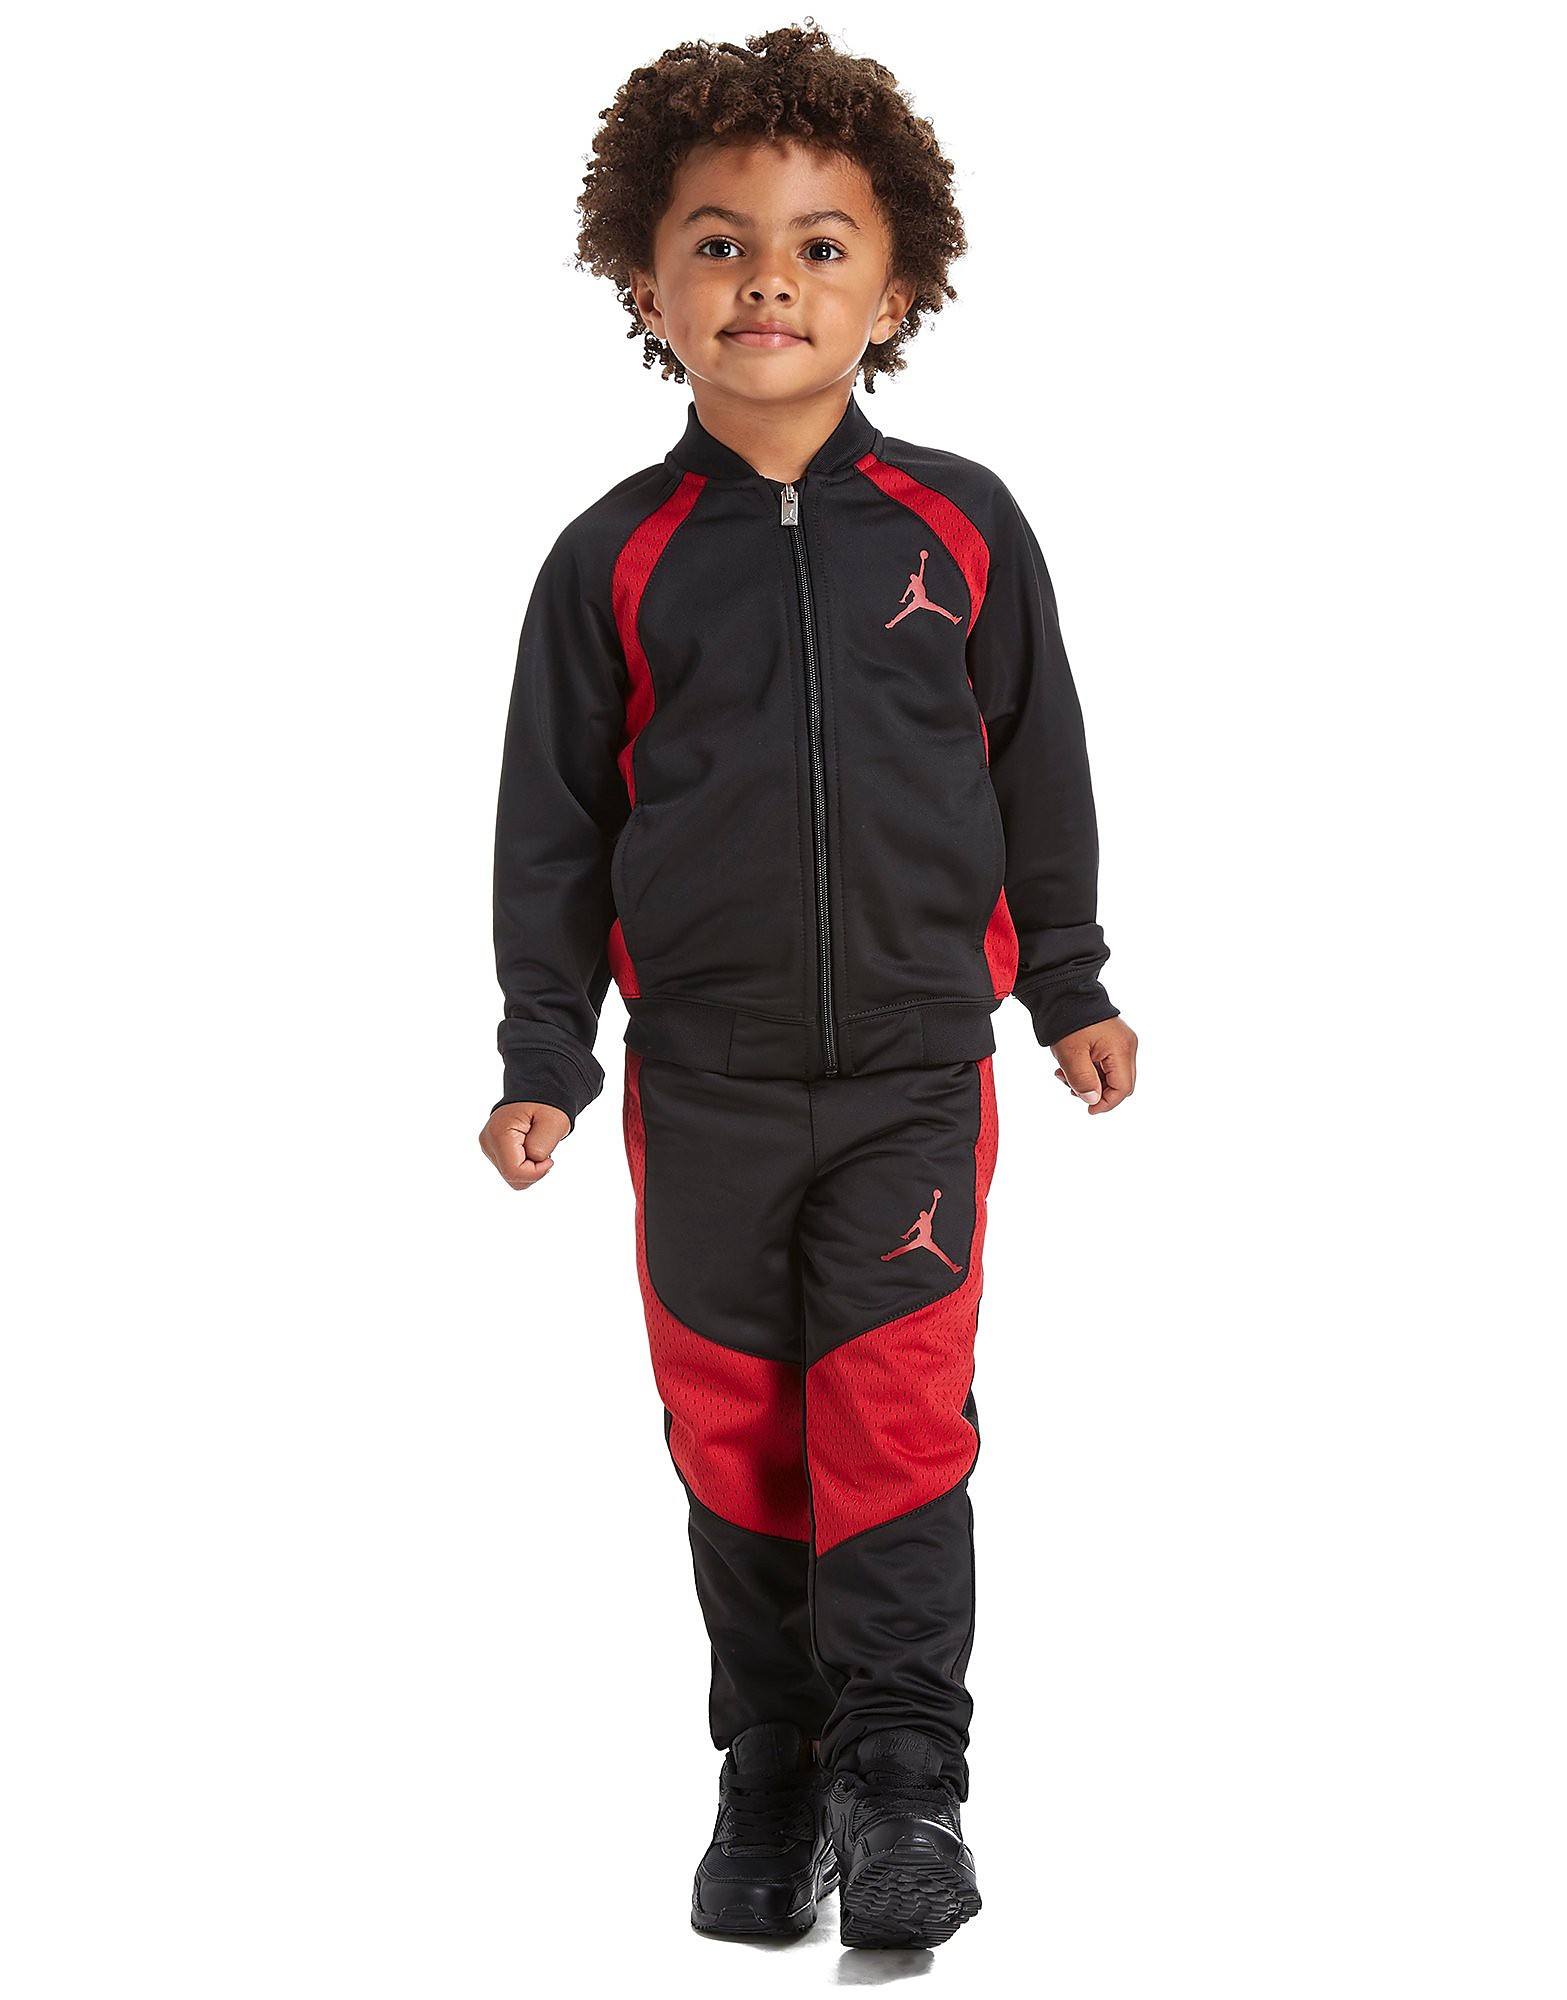 Jordan Air Jordan Tracksuit Children